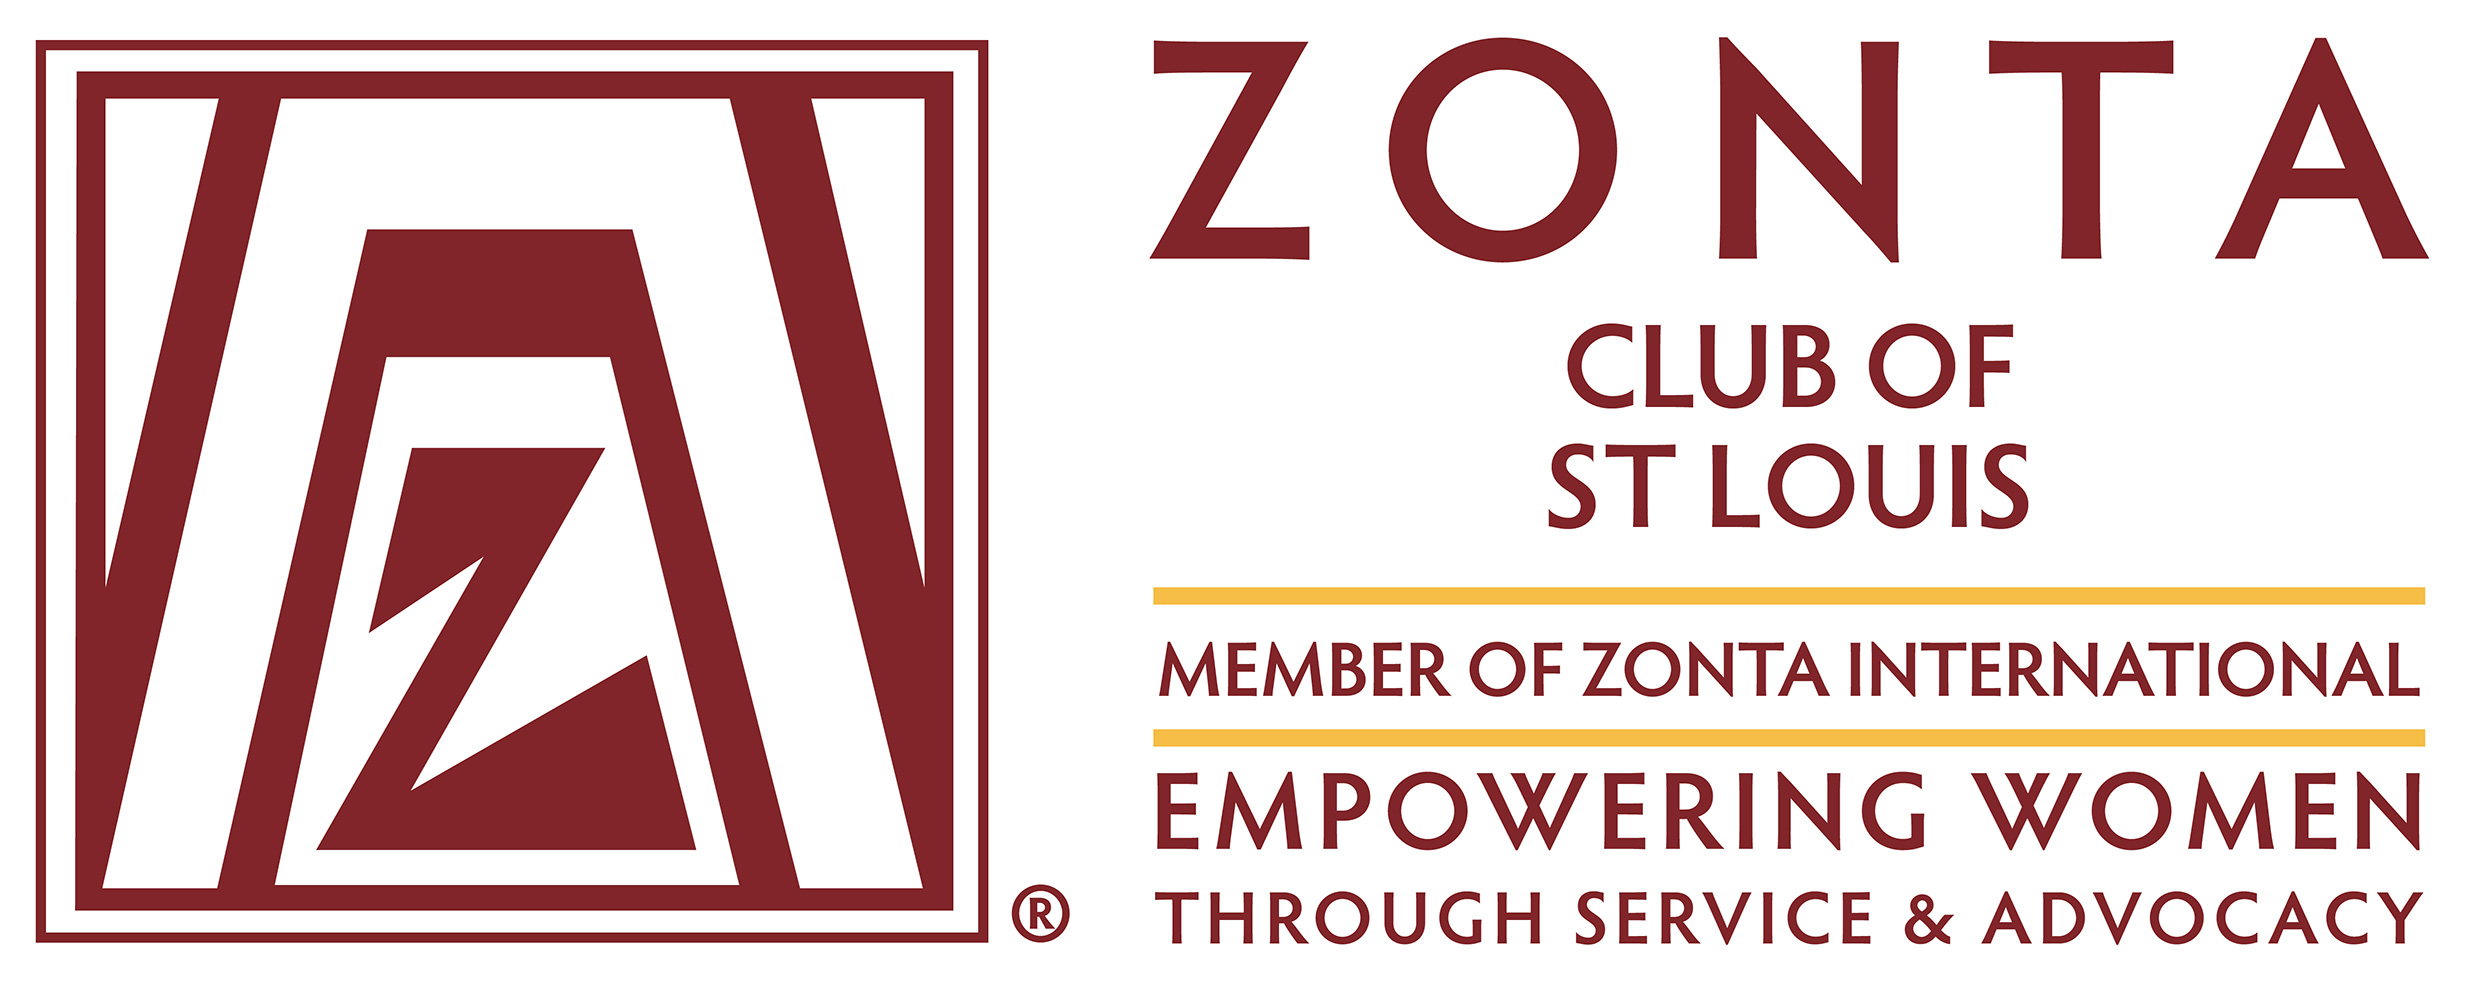 Zonta Club of St Louis